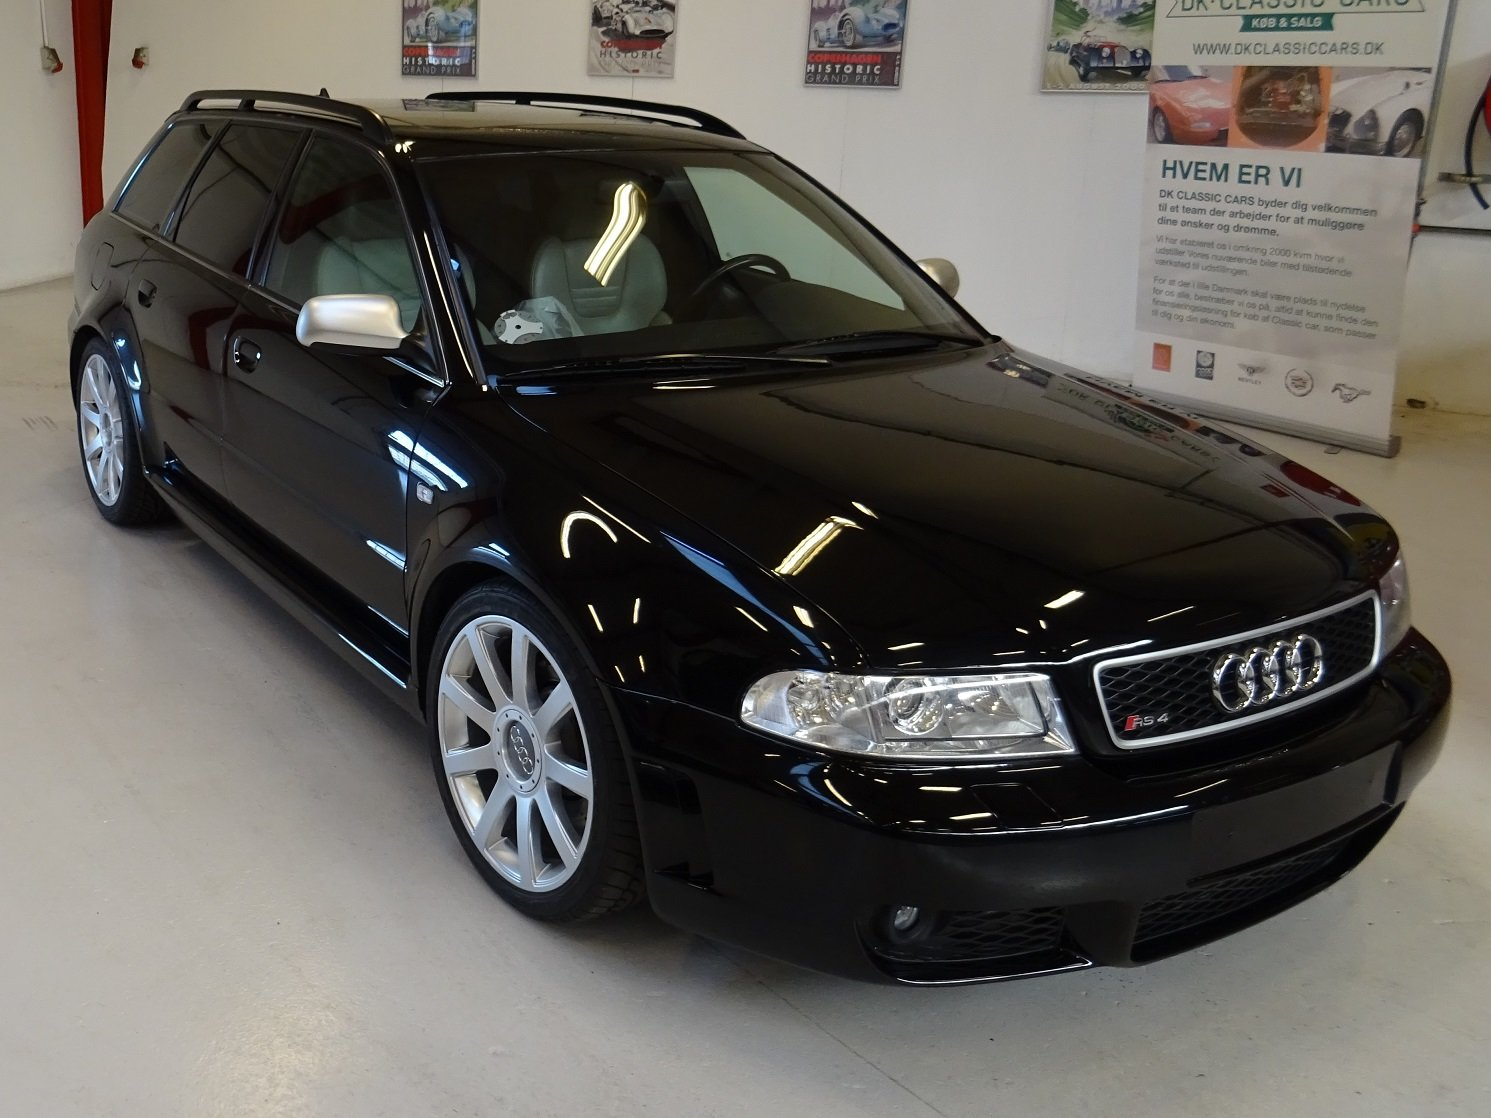 2000 Audi RS4 Avant Quattro (Typ 8D) For Sale (picture 1 of 6)